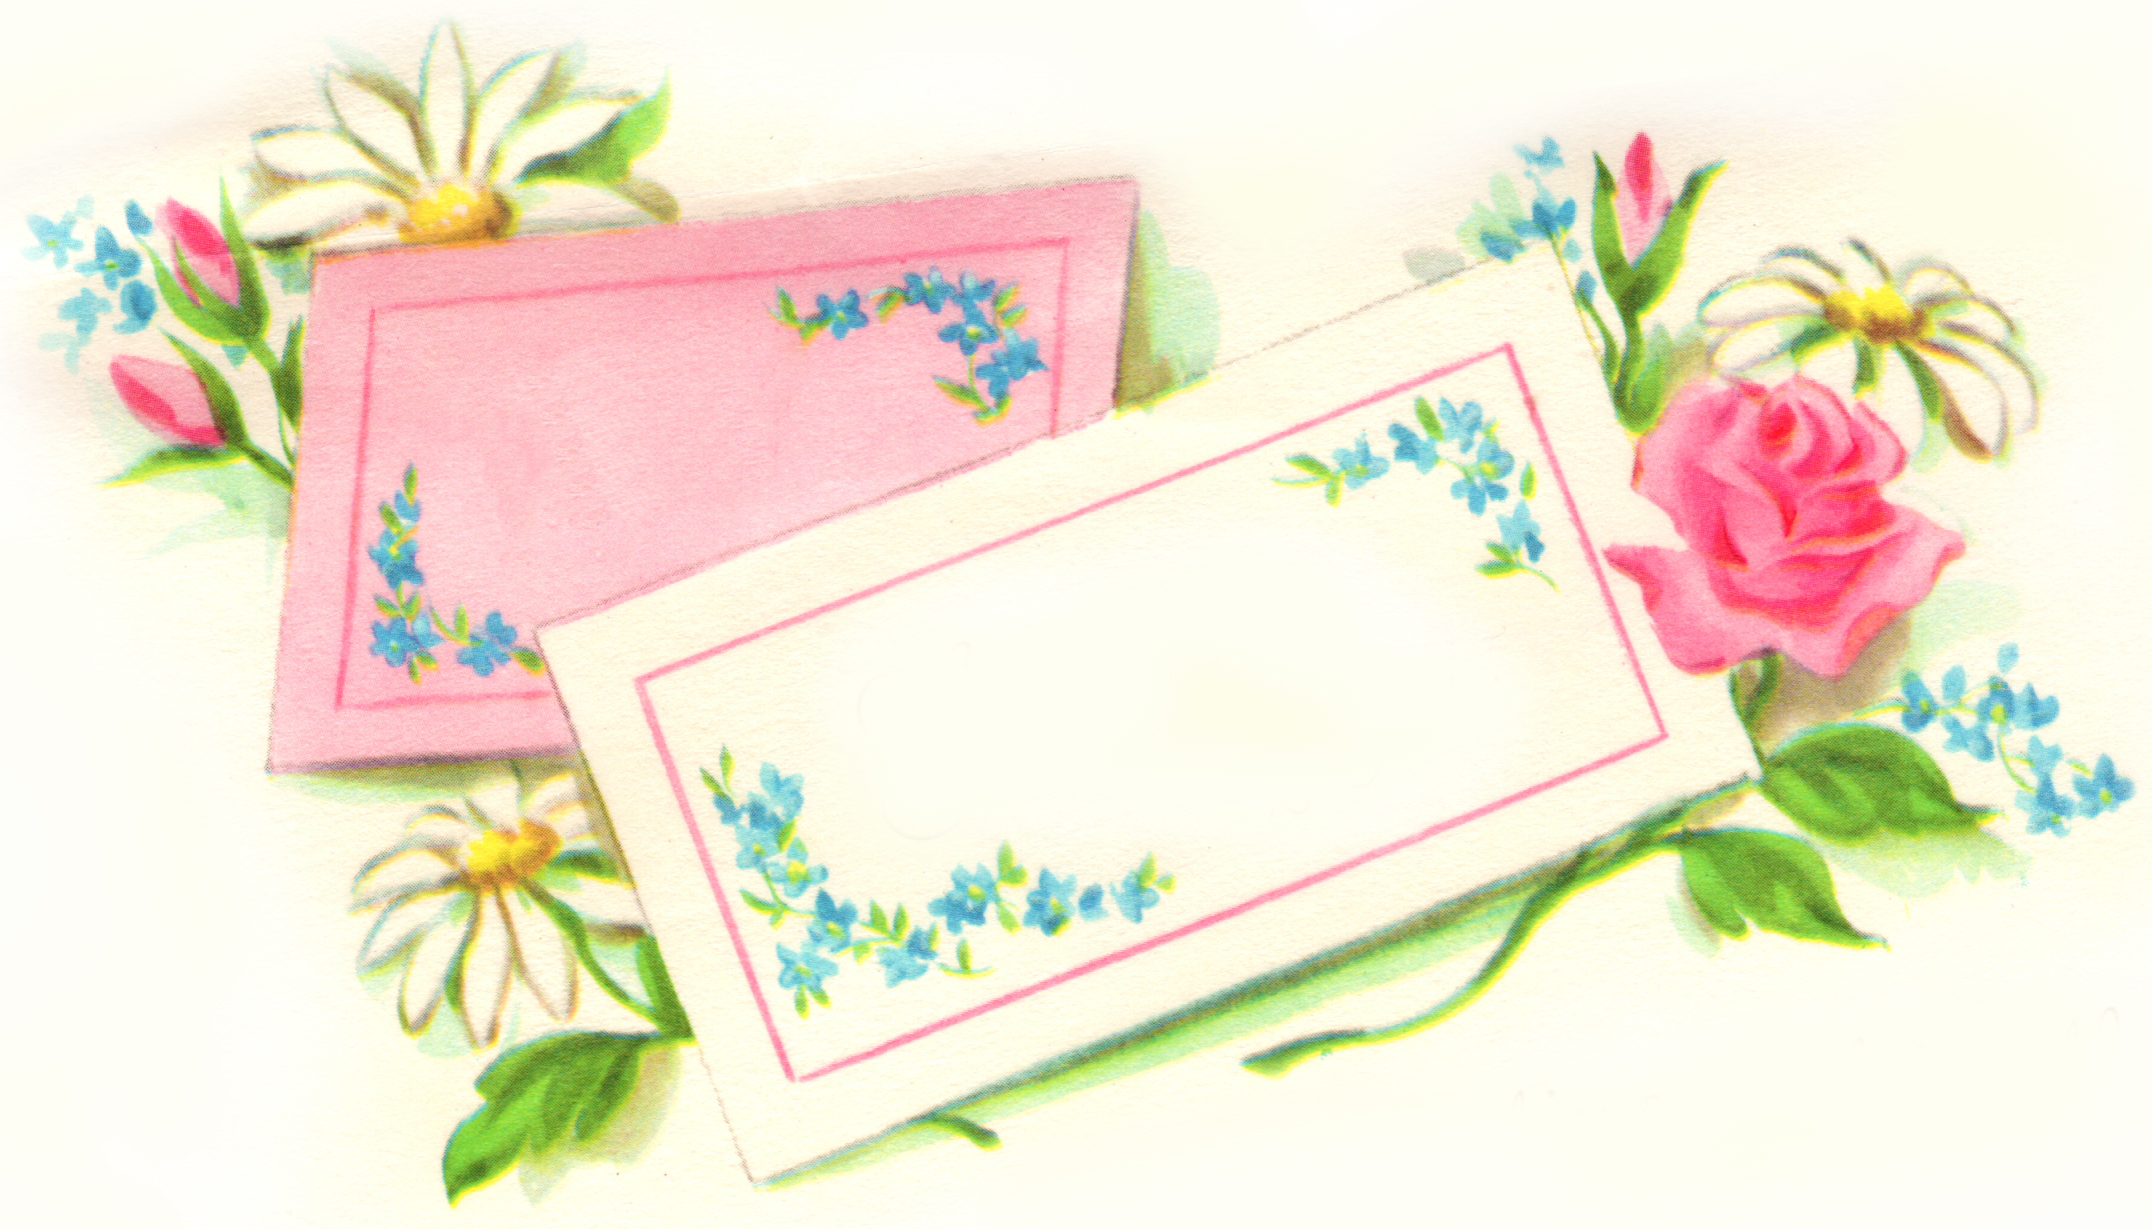 Free images flowers clipart image library stock Flower Clip Art image library stock